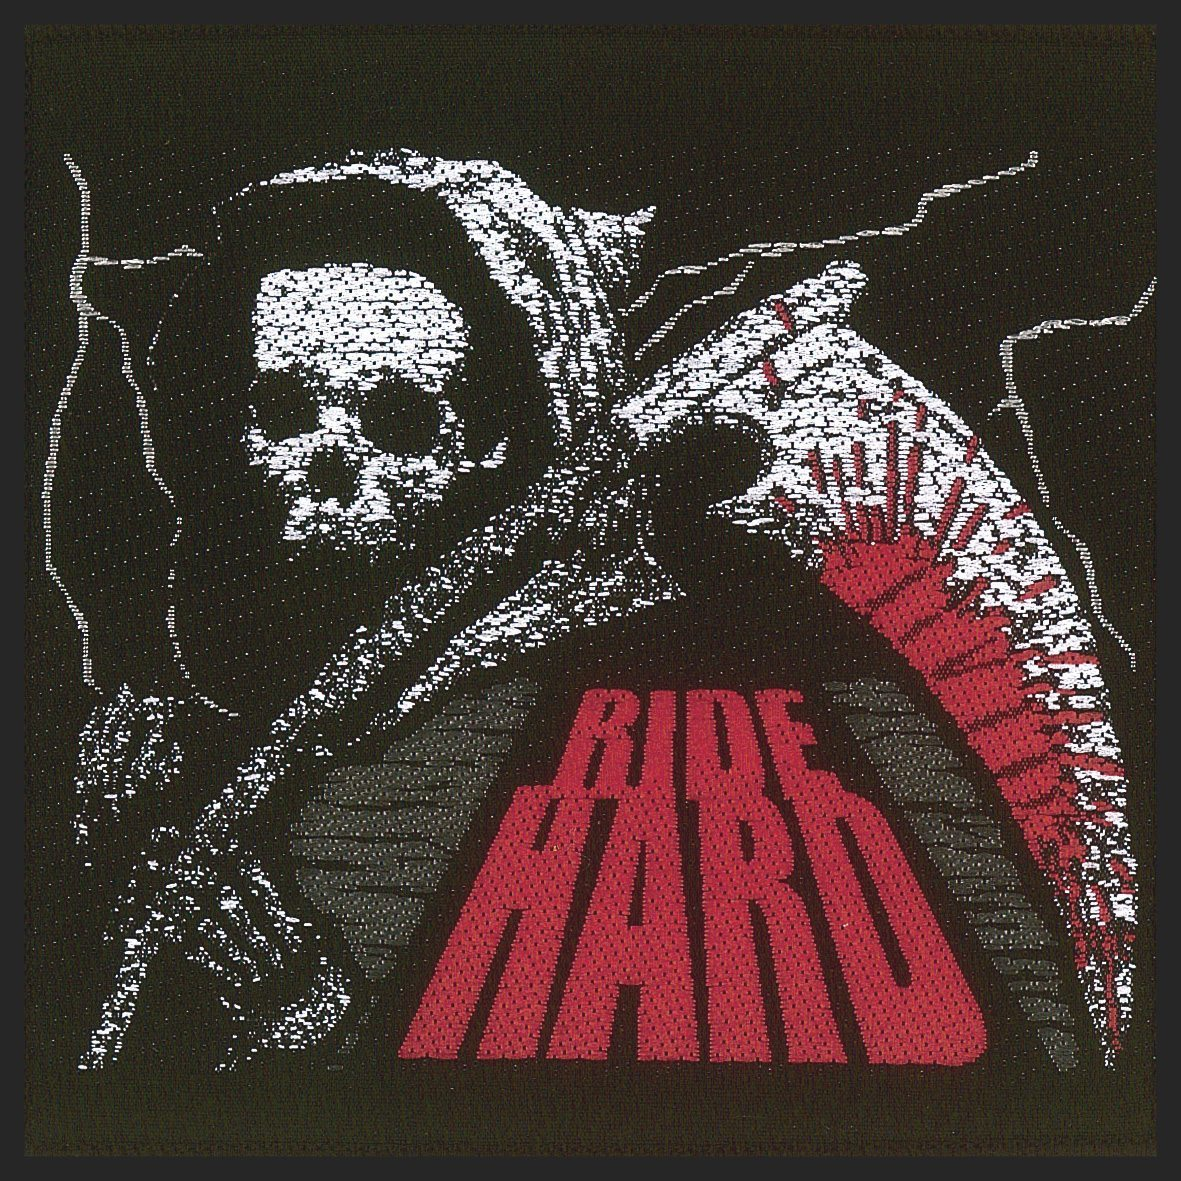 Ride Hard Woven Patch.